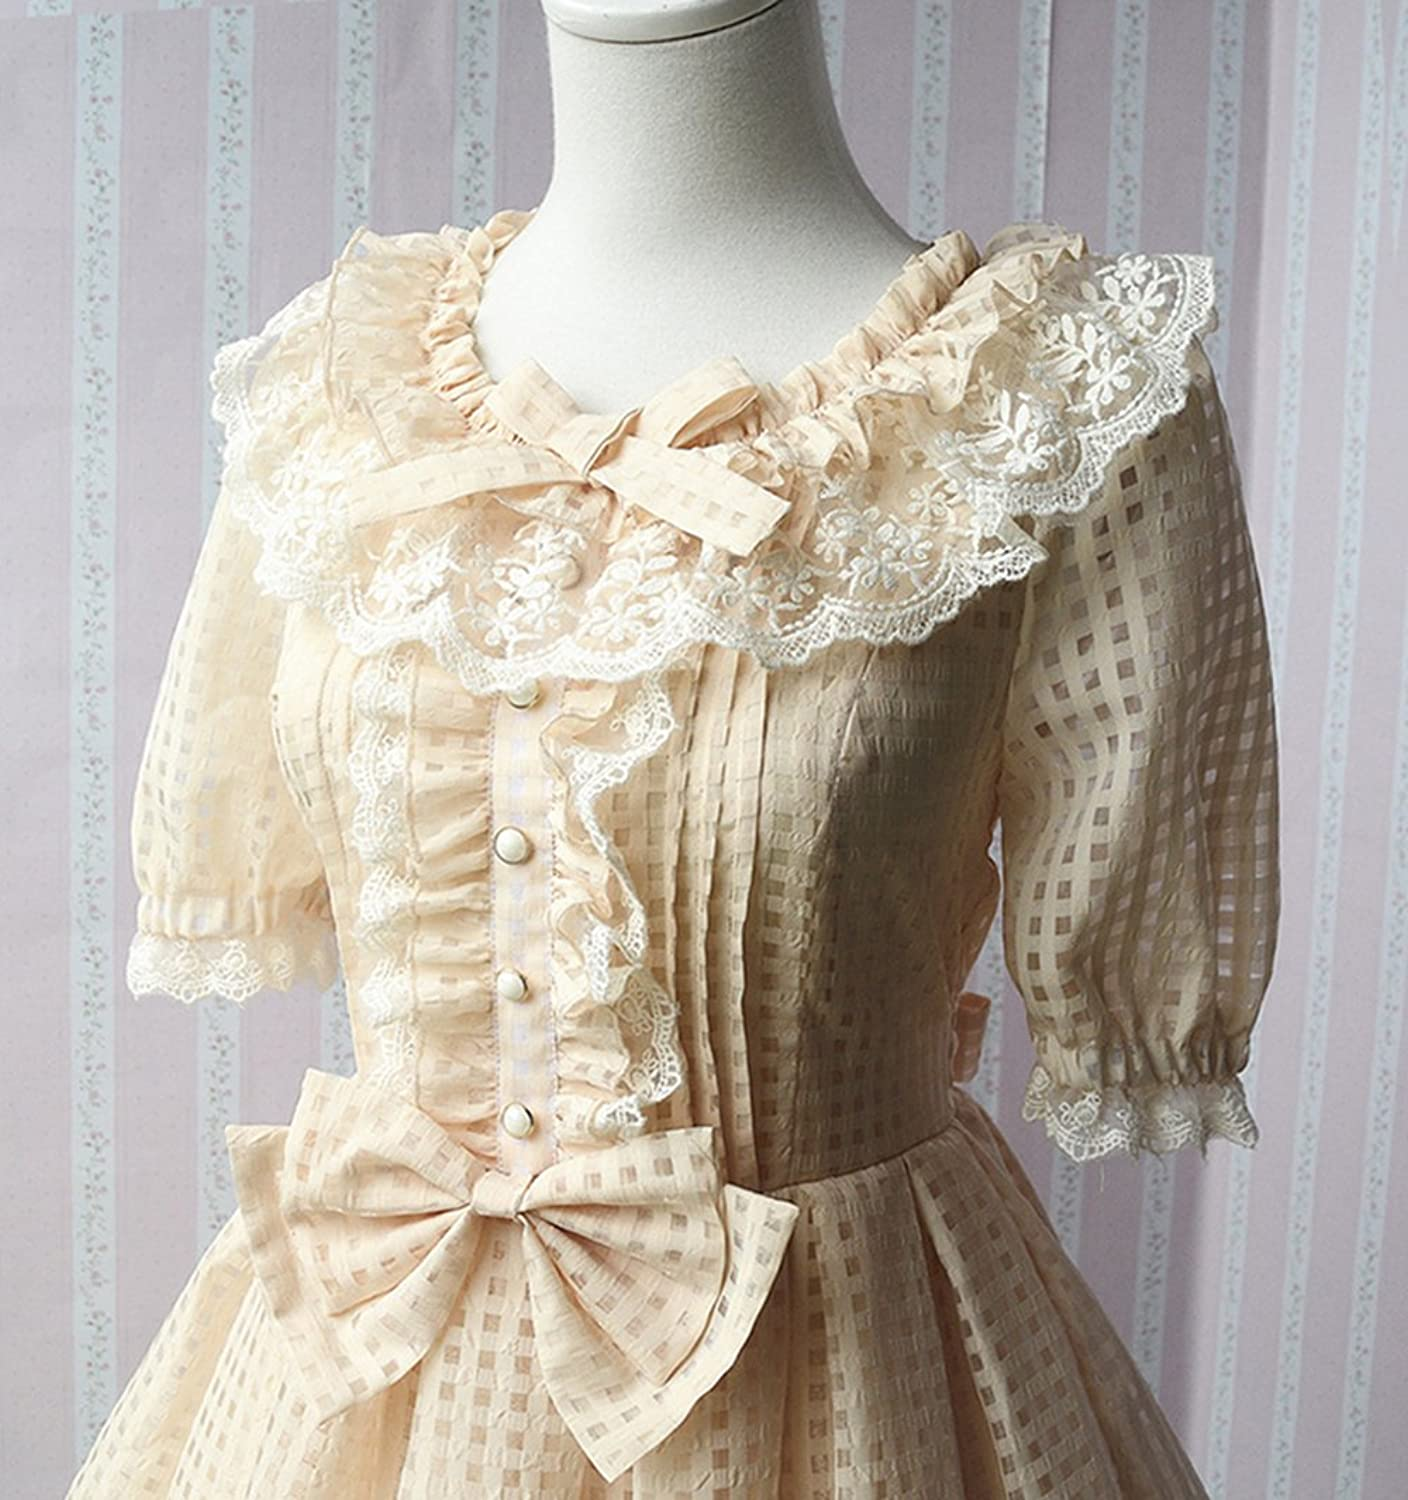 Vintage Style Children's Clothing: Girls, Boys, Baby, Toddler Nuoqi Womens Lolita Victorian Organza Lace Lotus Round Collar Short Sleeve Bubble Dress $59.99 AT vintagedancer.com